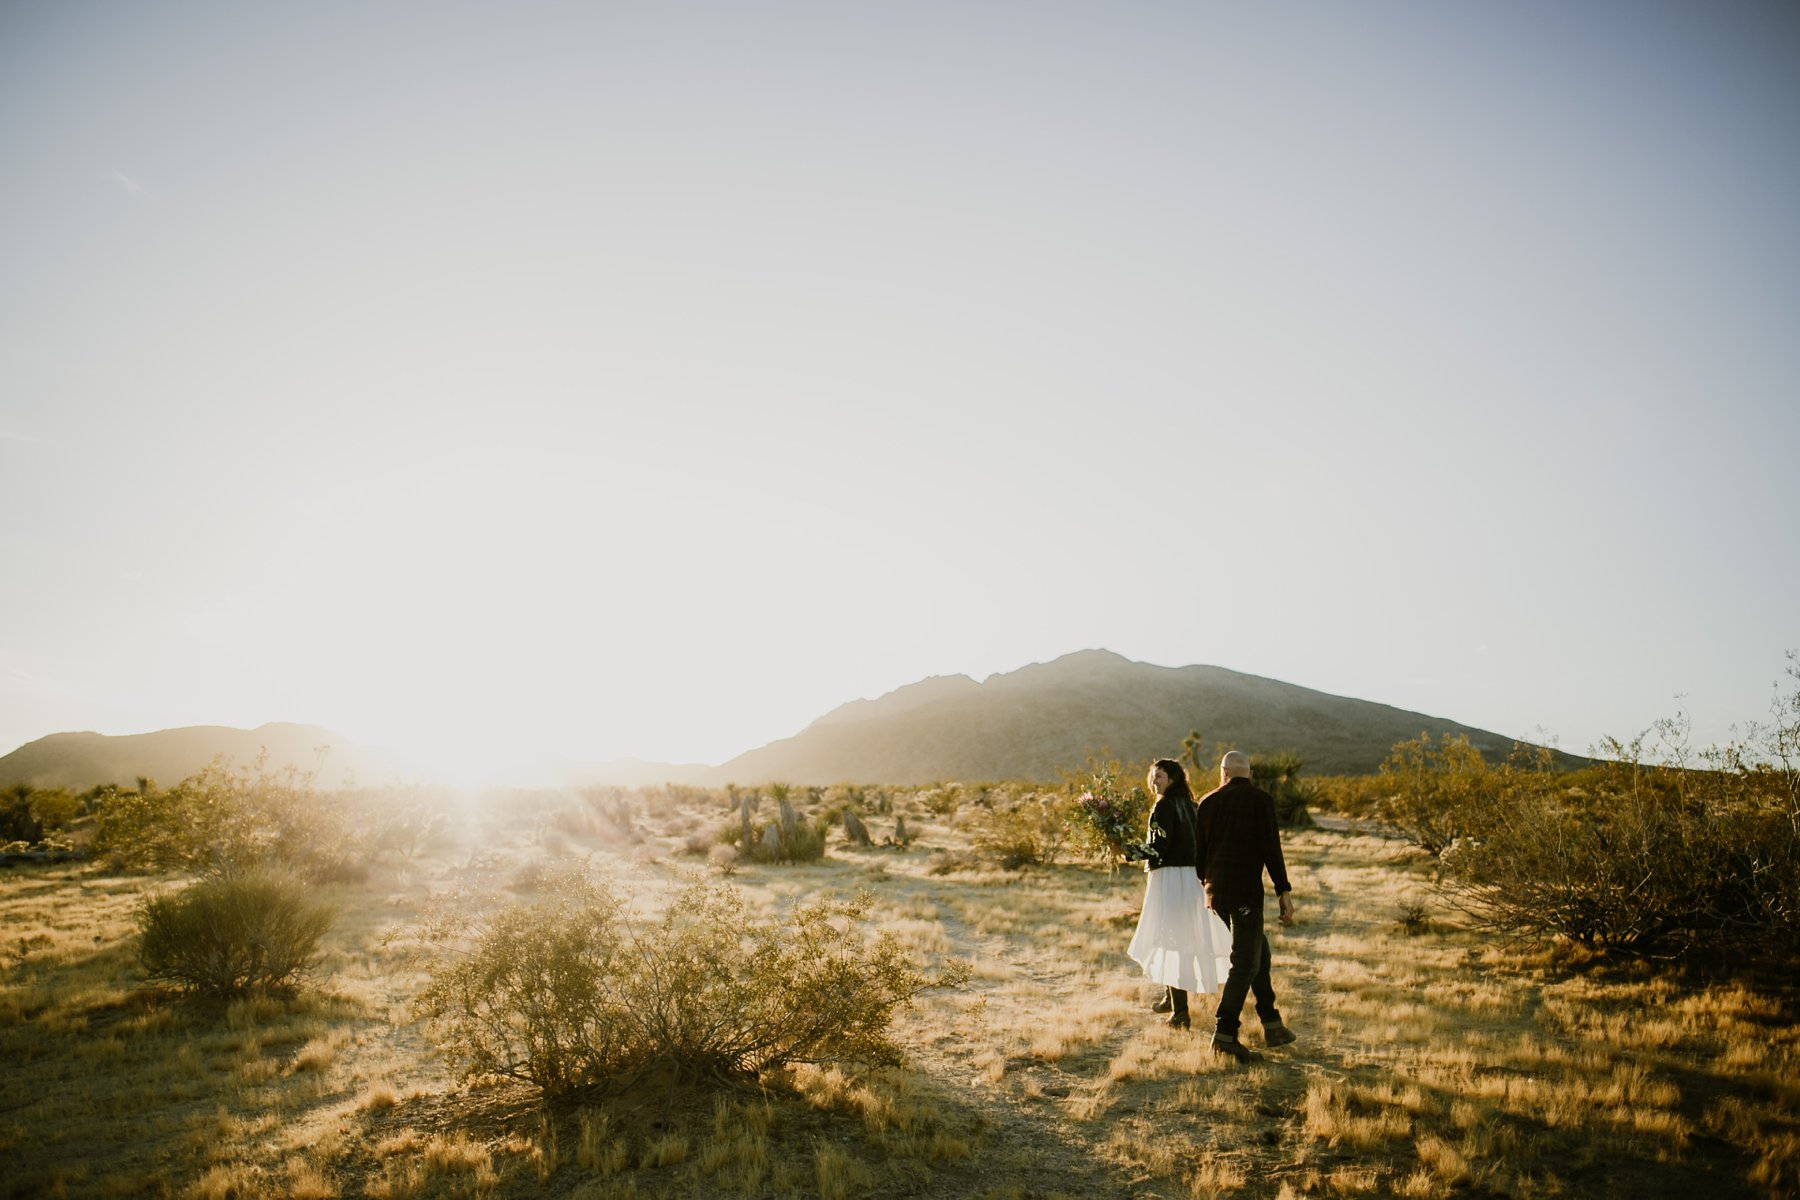 motorcycle-elopement-in-joshua-tree_0014.jpg